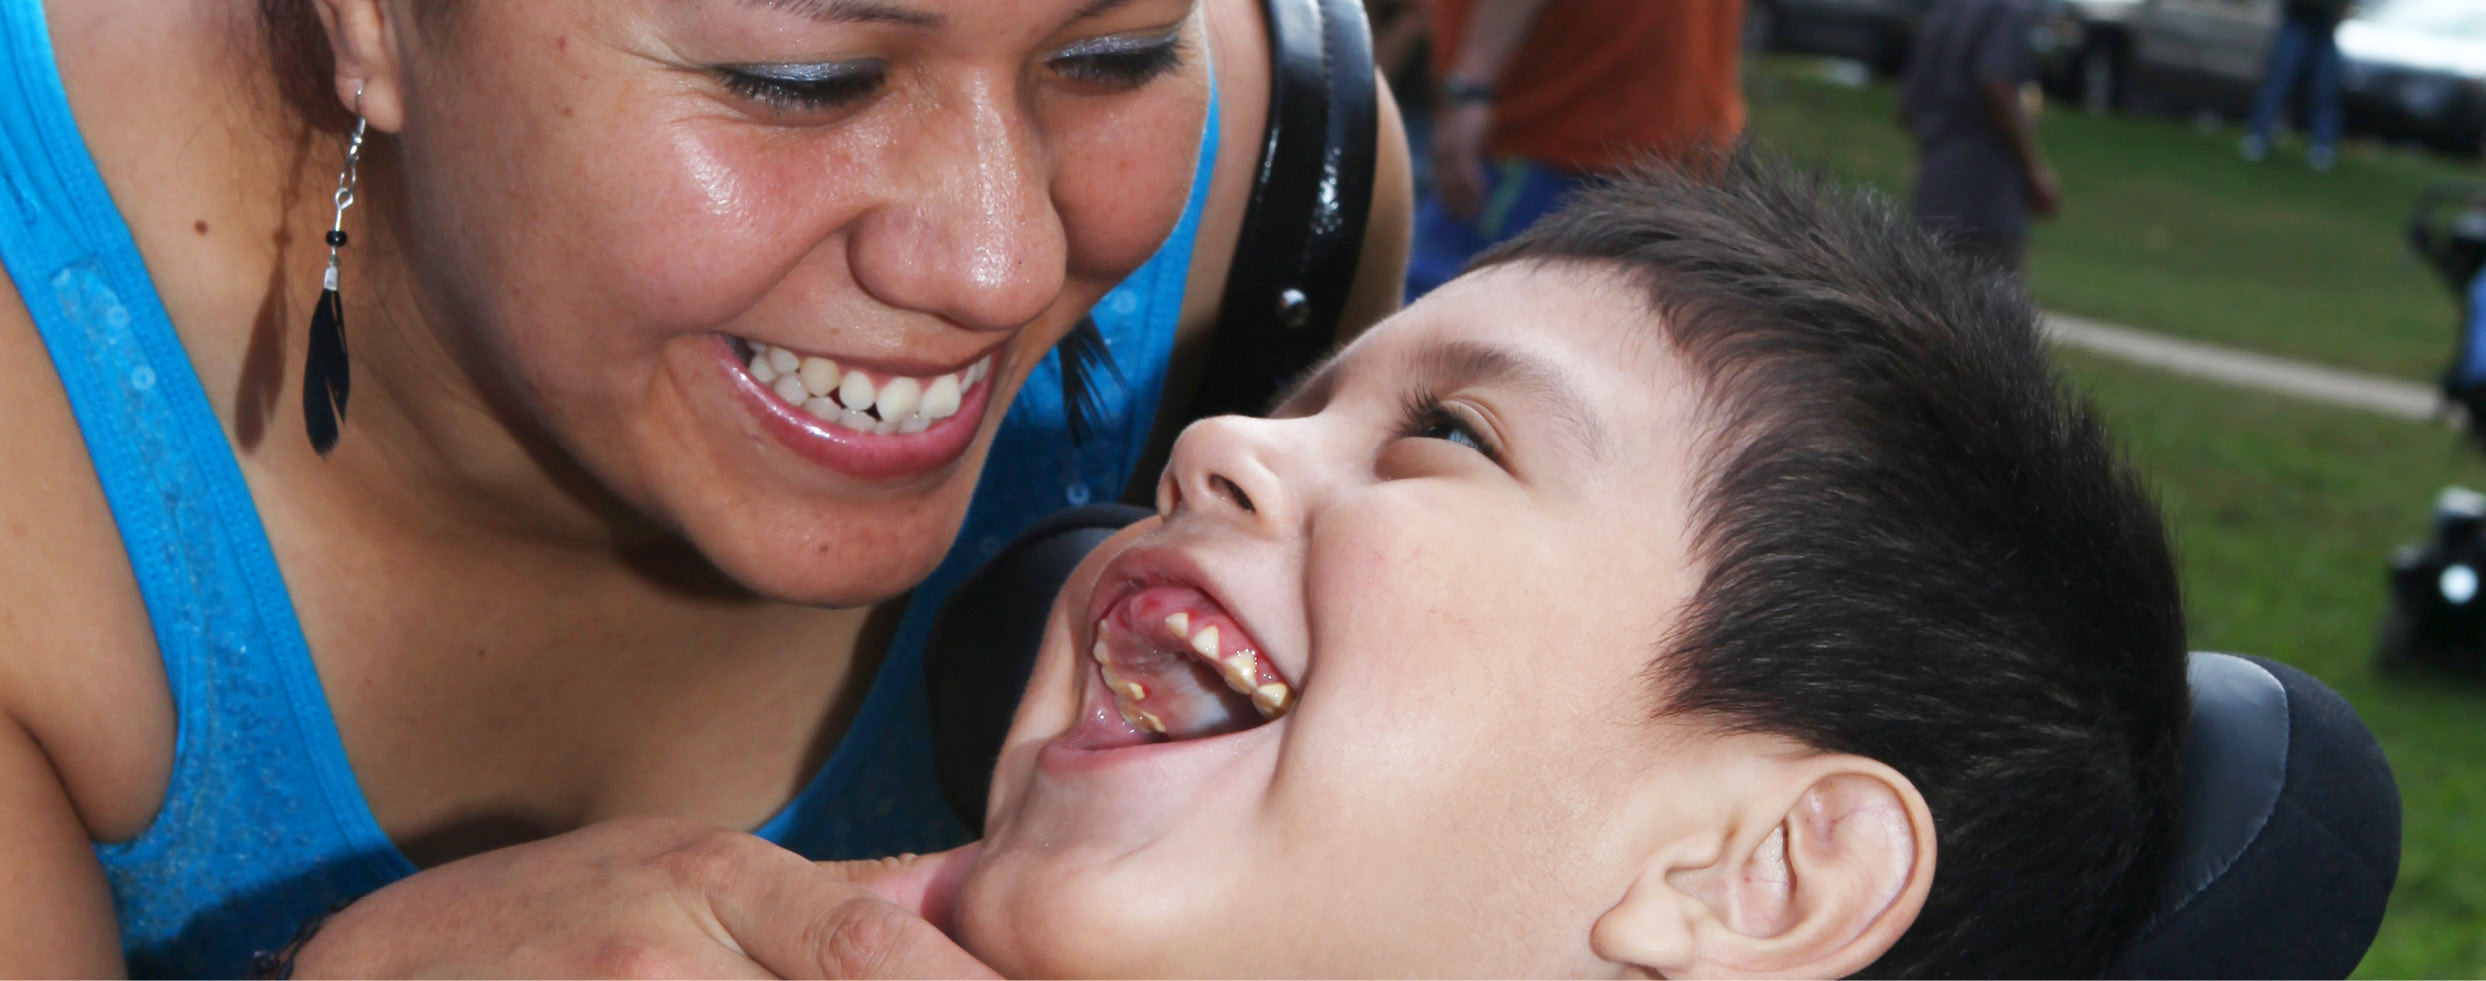 Multicultural Outreach Program works with culturally diverse families